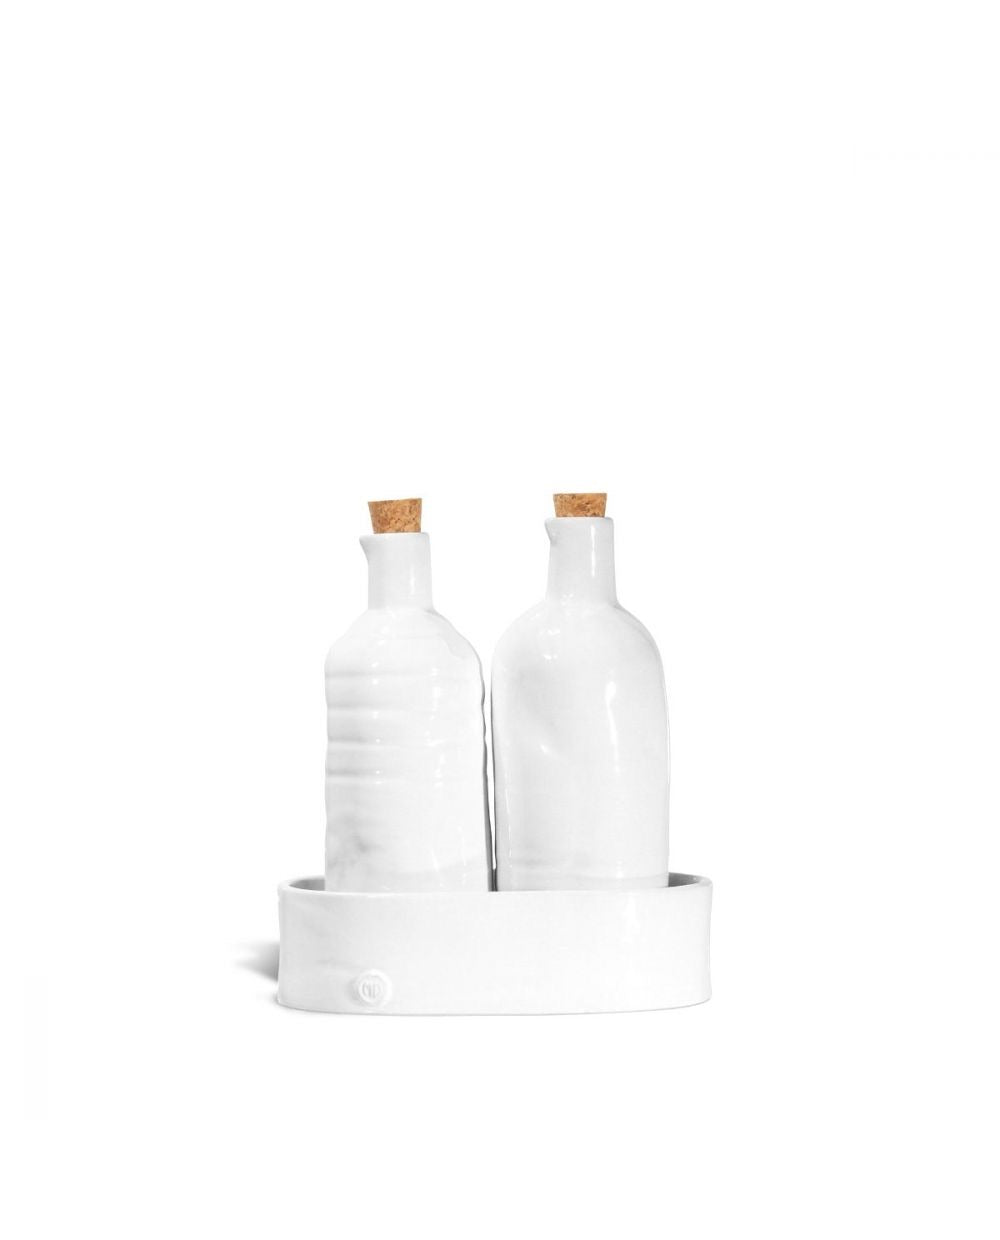 Oil & Vinegar Set No. 6